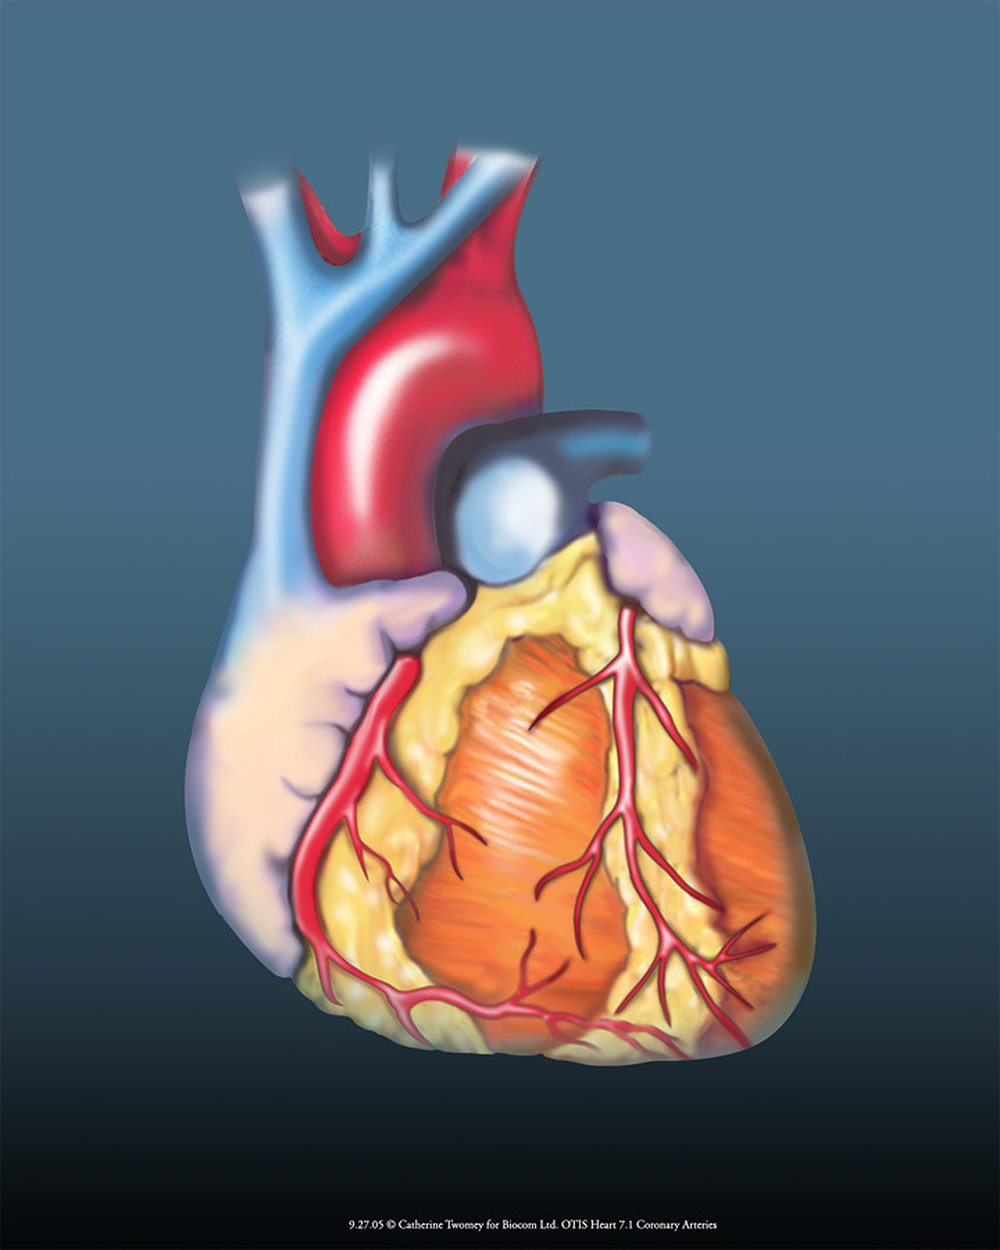 heartcoronaries1500.jpg